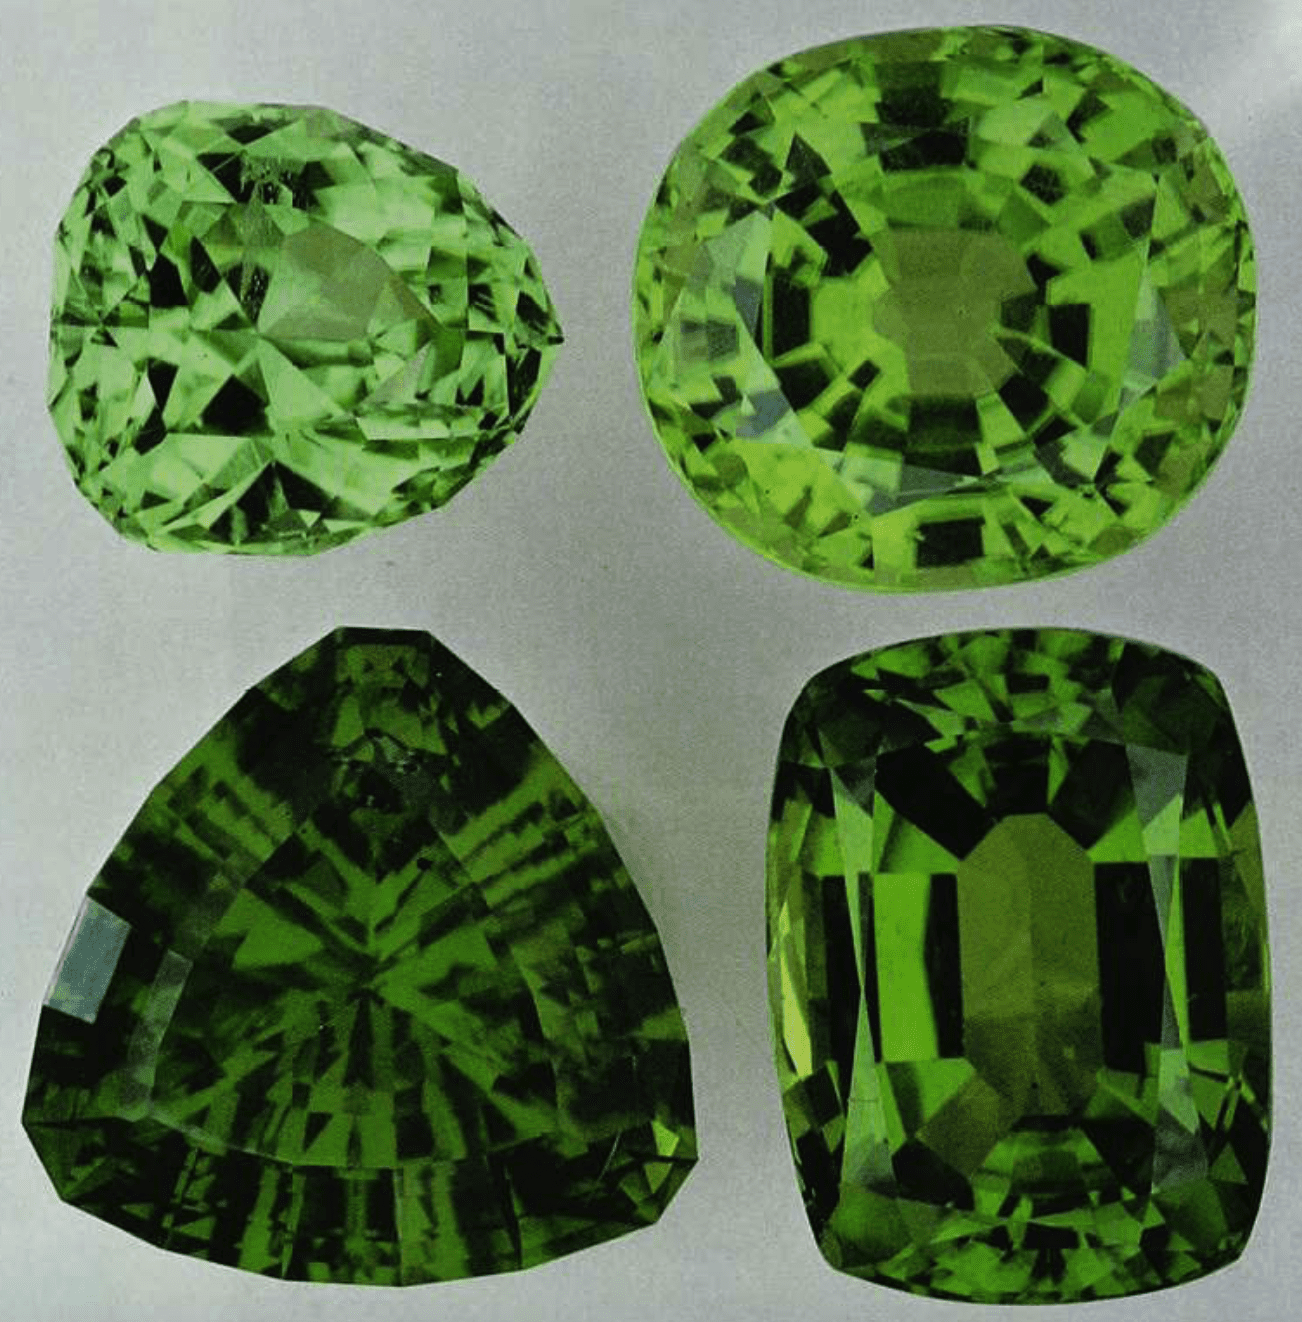 Peridot gems - Norway, Egypt, Arizona